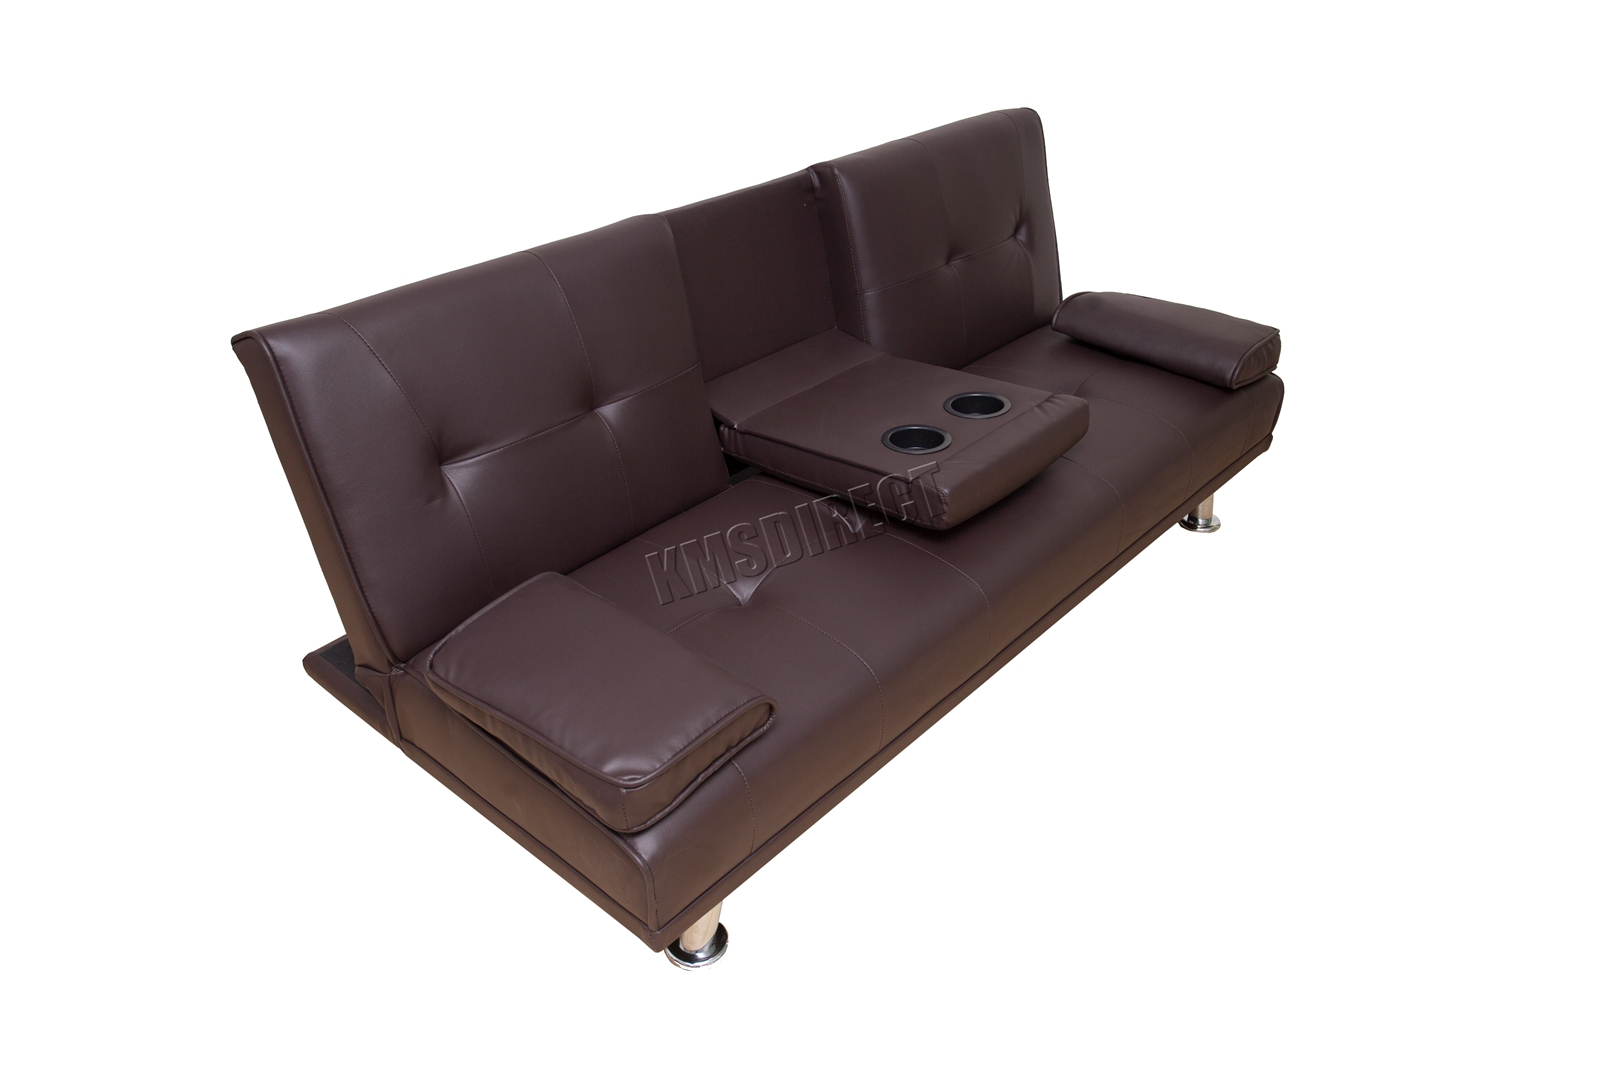 WestWood-Faux-Leather-Manhattan-Sofa-Bed-recliner-3-Seater-Modern-Luxury-Design thumbnail 24